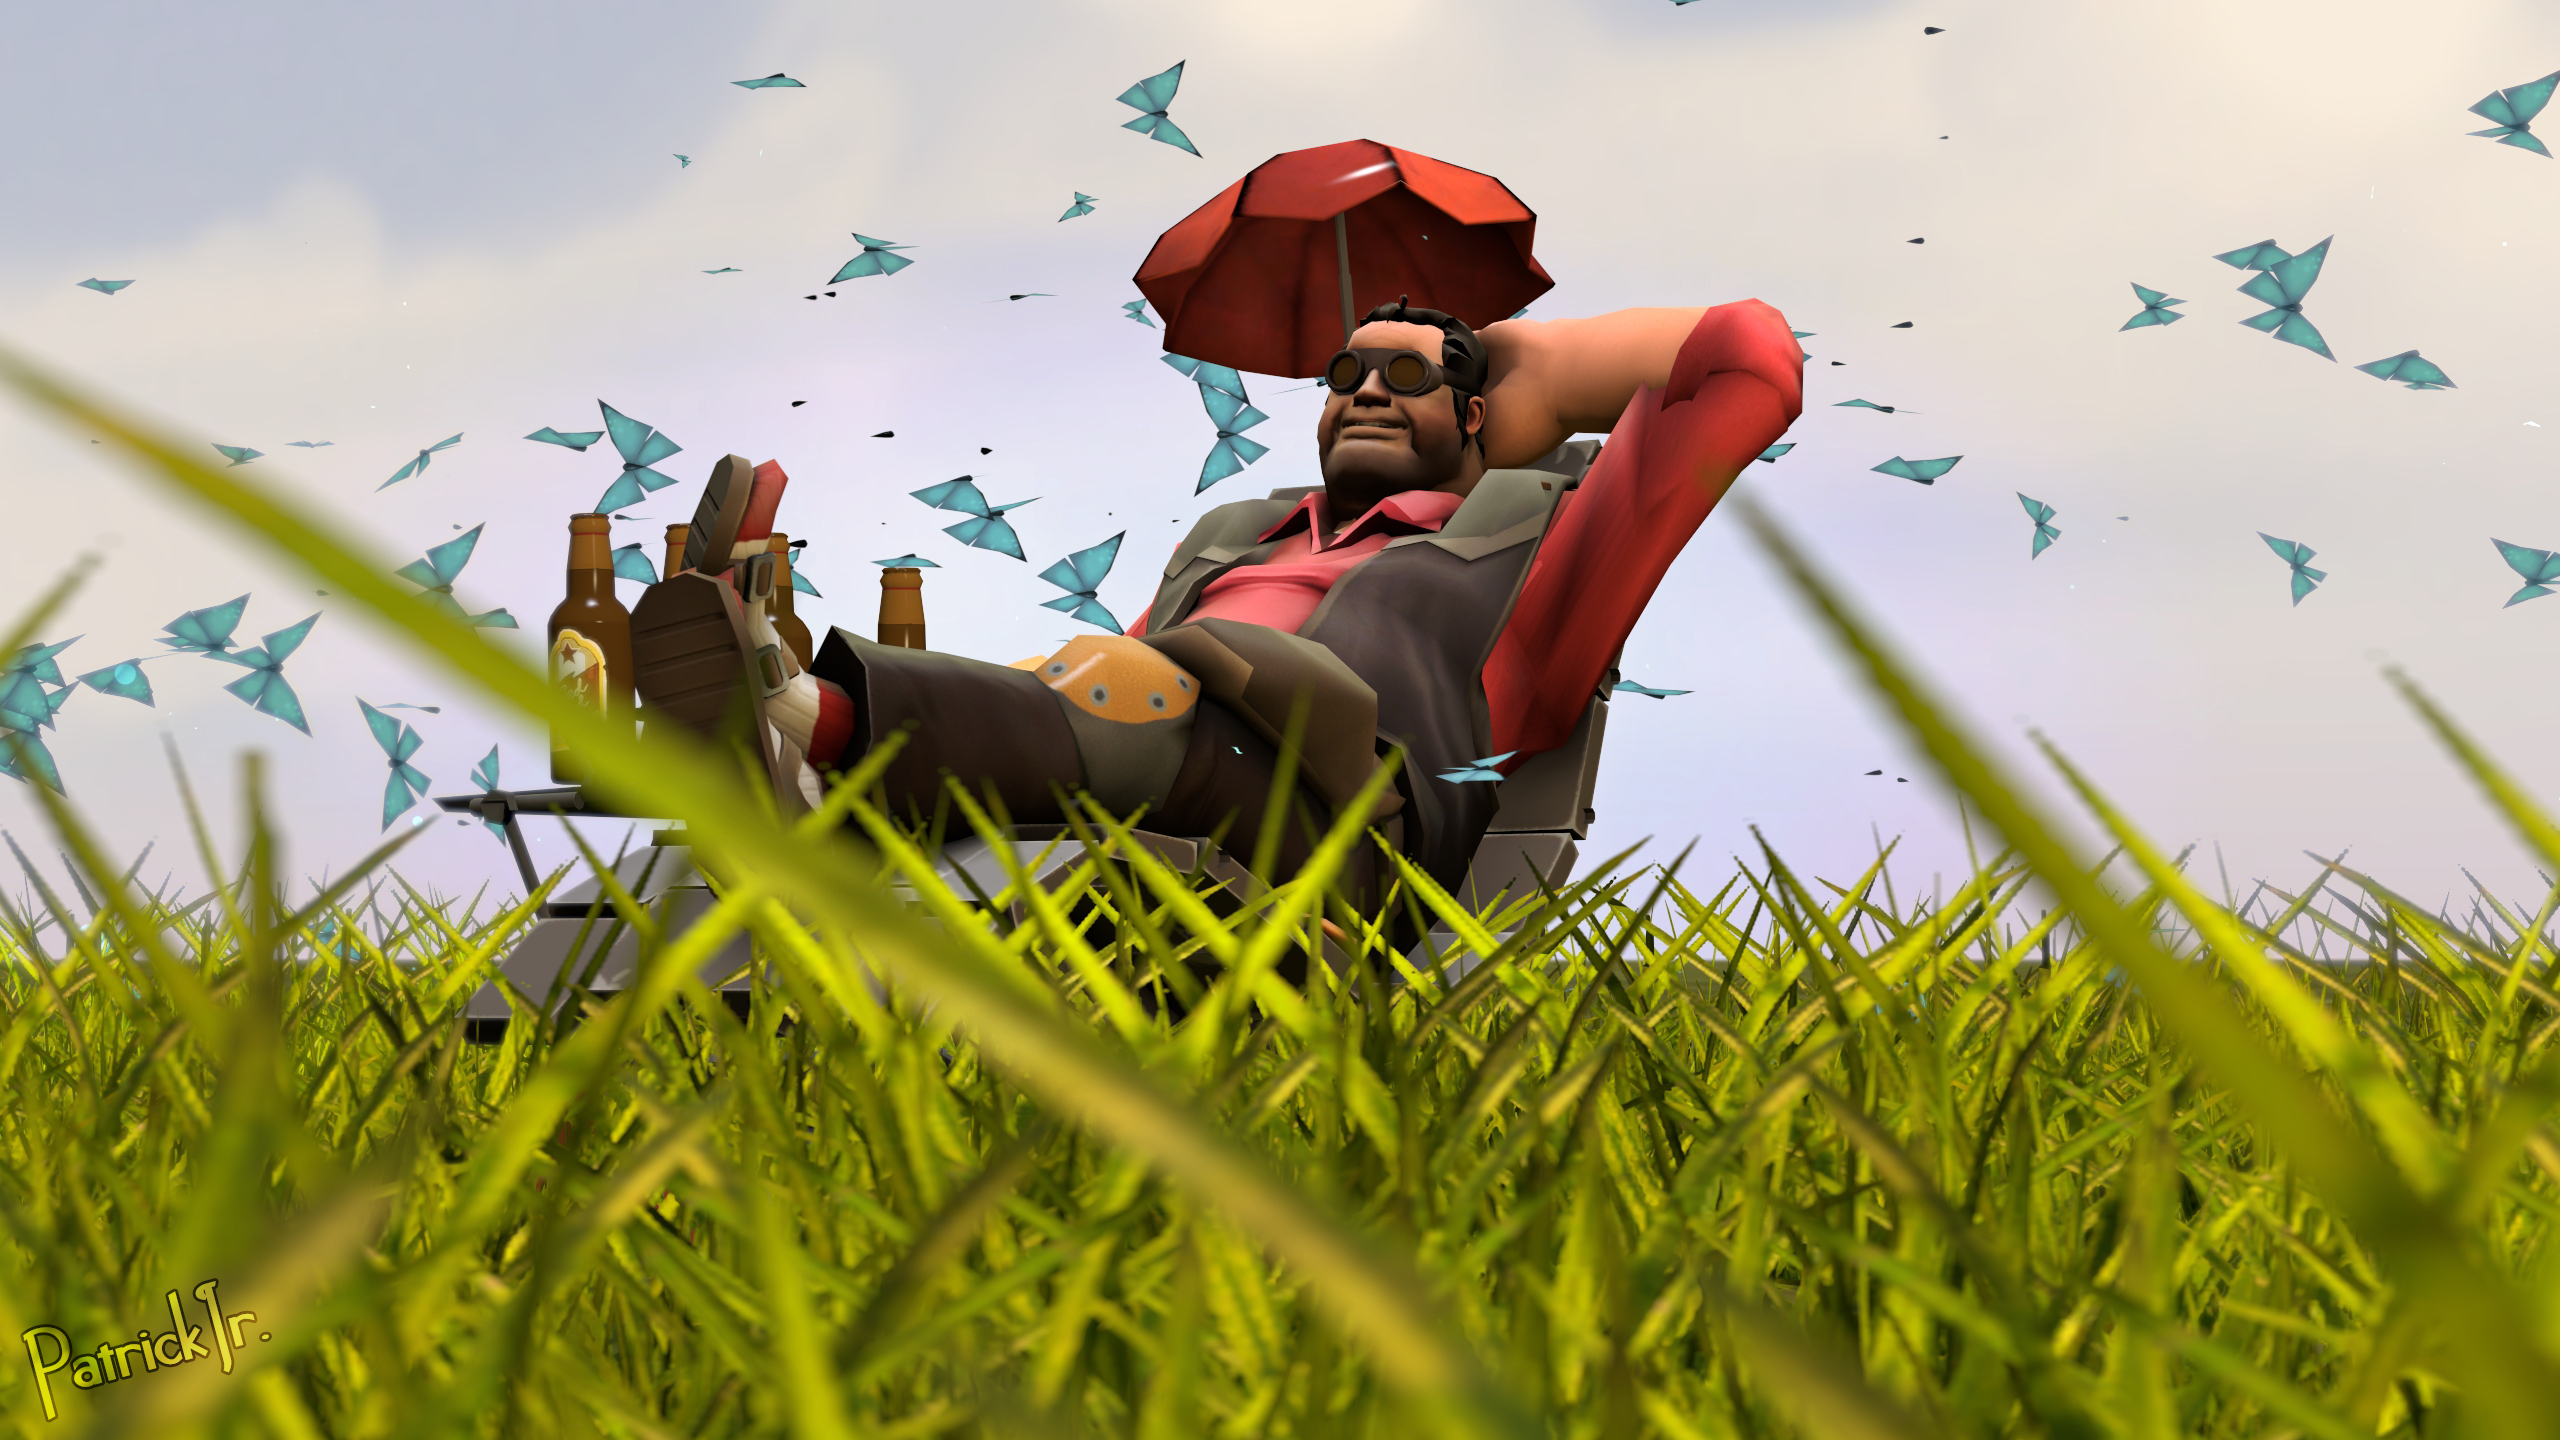 SFM Poster: Lazy Engie by PatrickJr